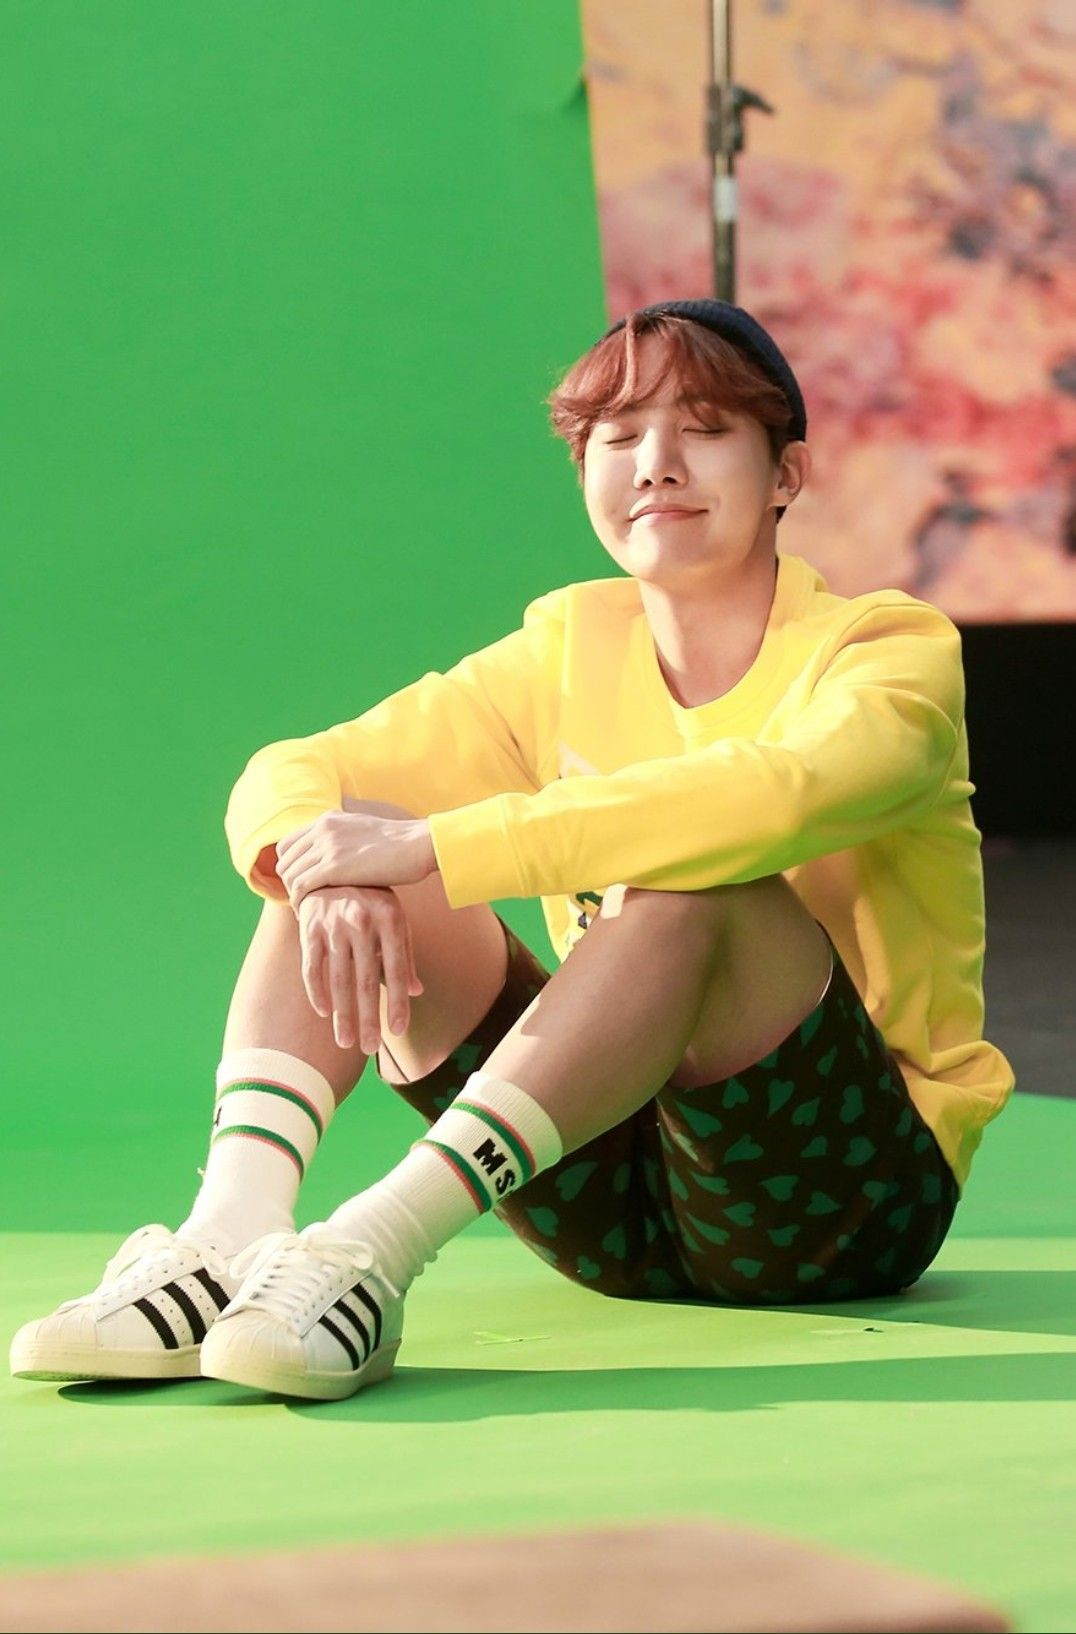 Okay. But does Hobi know John Cena loves him??? Cause like... I would love to see them meet each other.